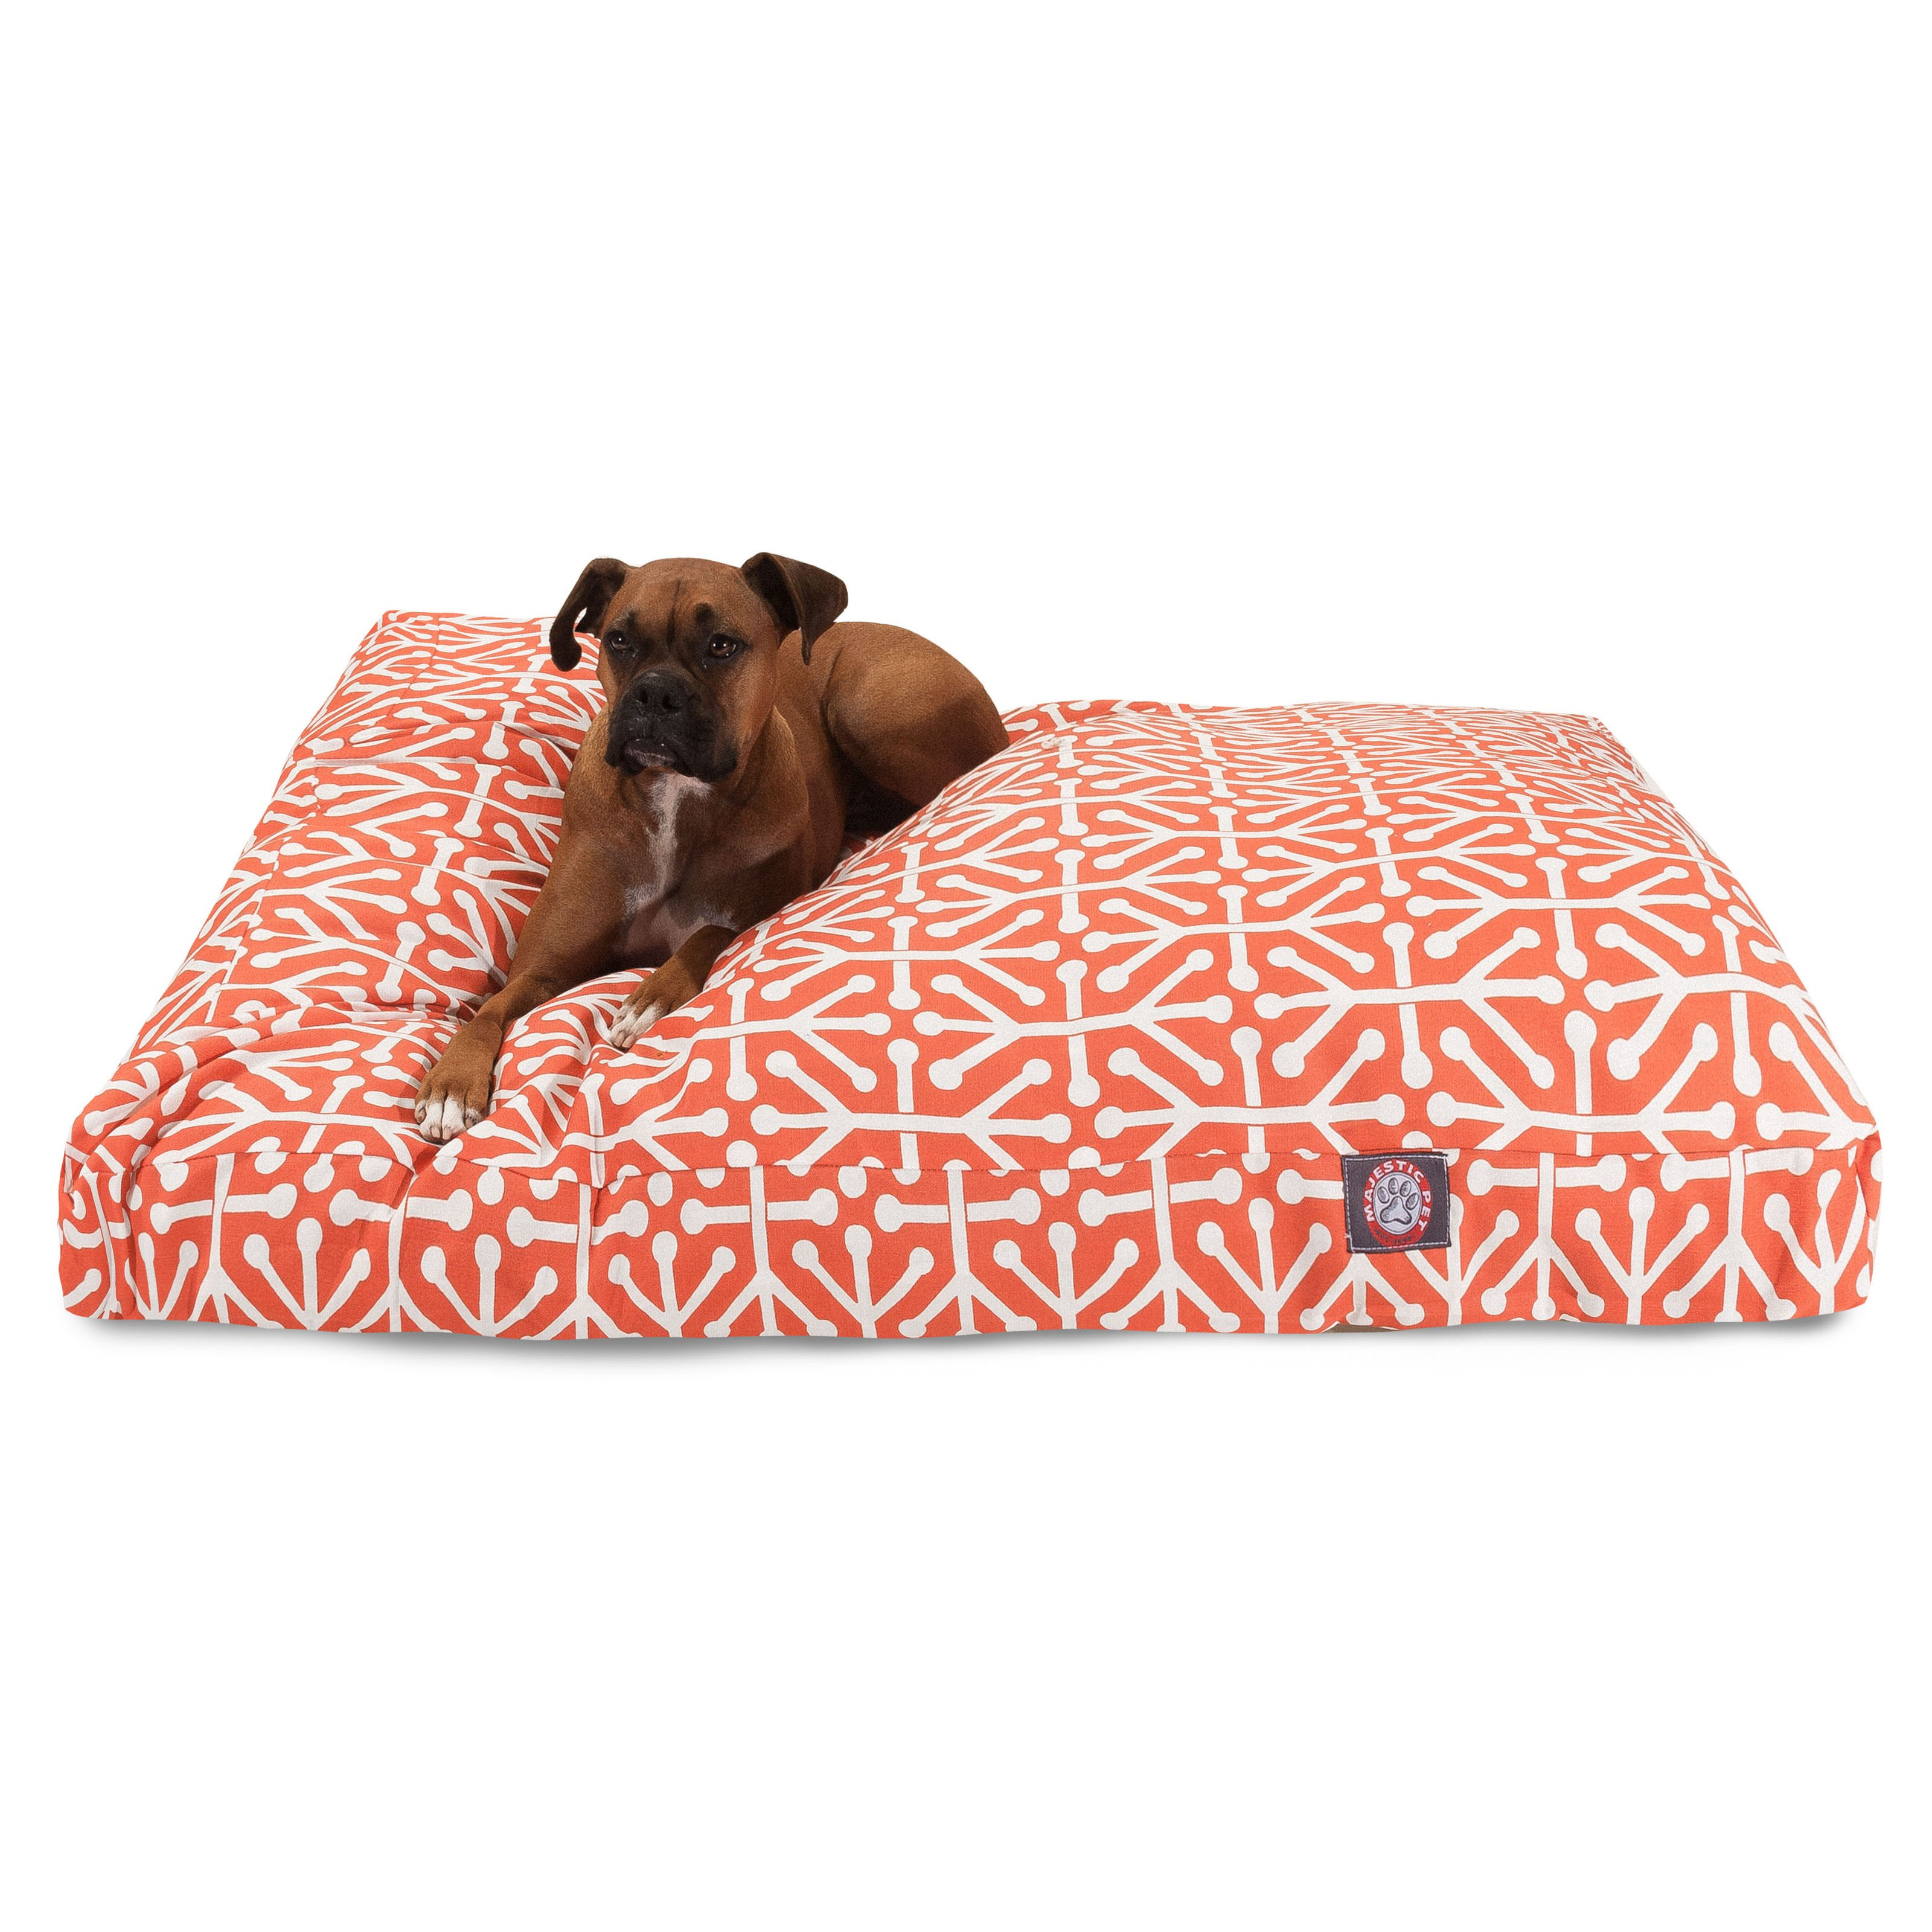 more removable options dog center shop cover large category petcostore beds on sale available small bed en bedding petco and best